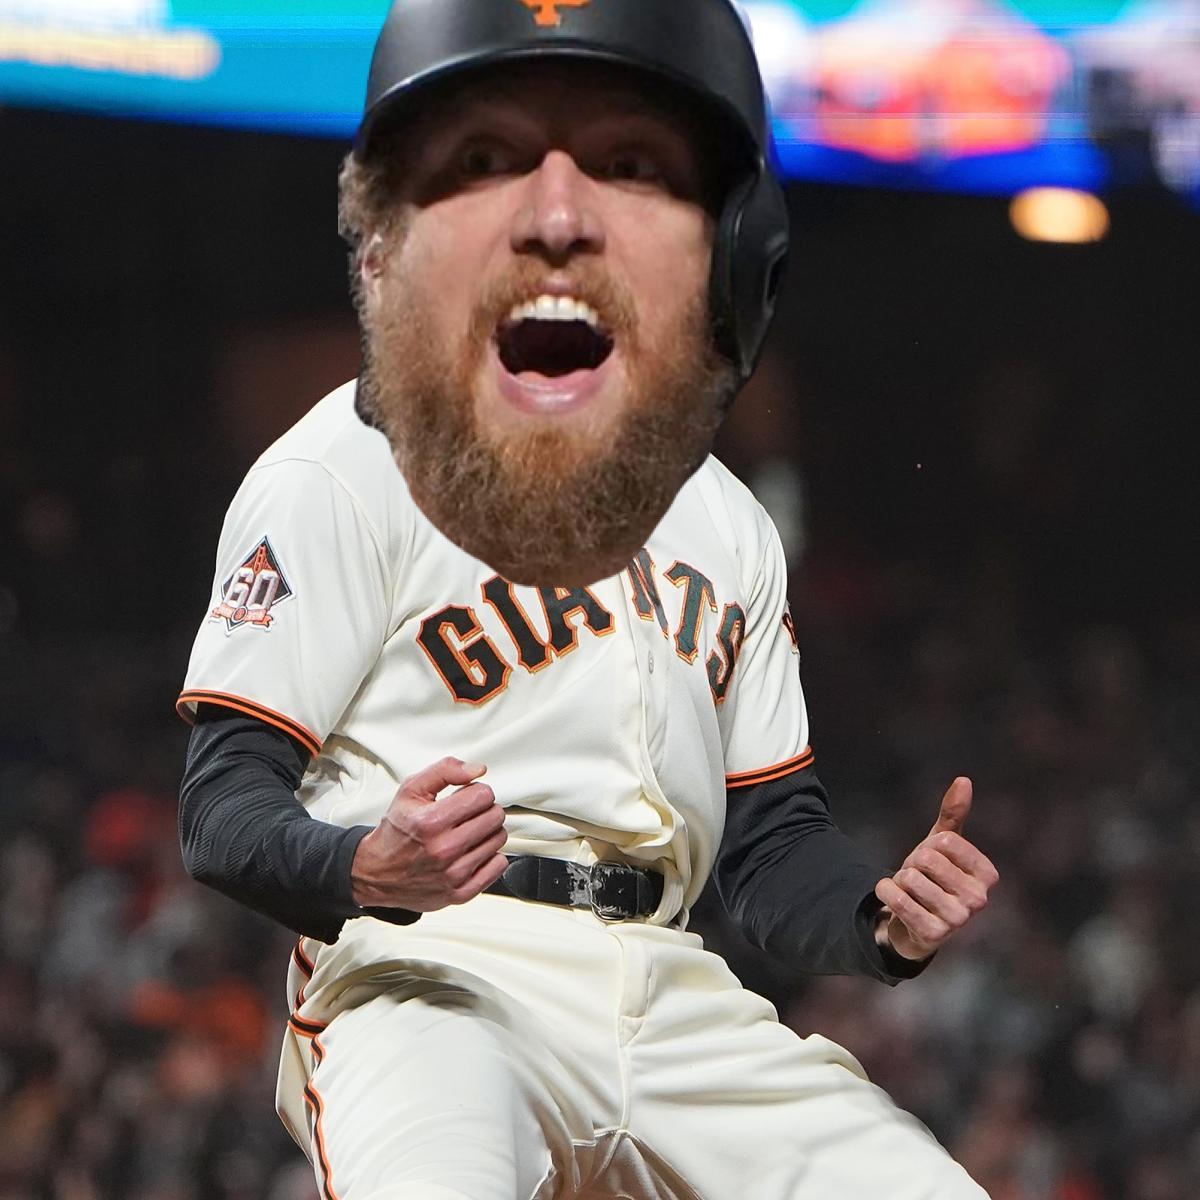 WHAT ARE THE GIANTS DOING!? WHY DID WE SIGN HUNTERPENCE!?